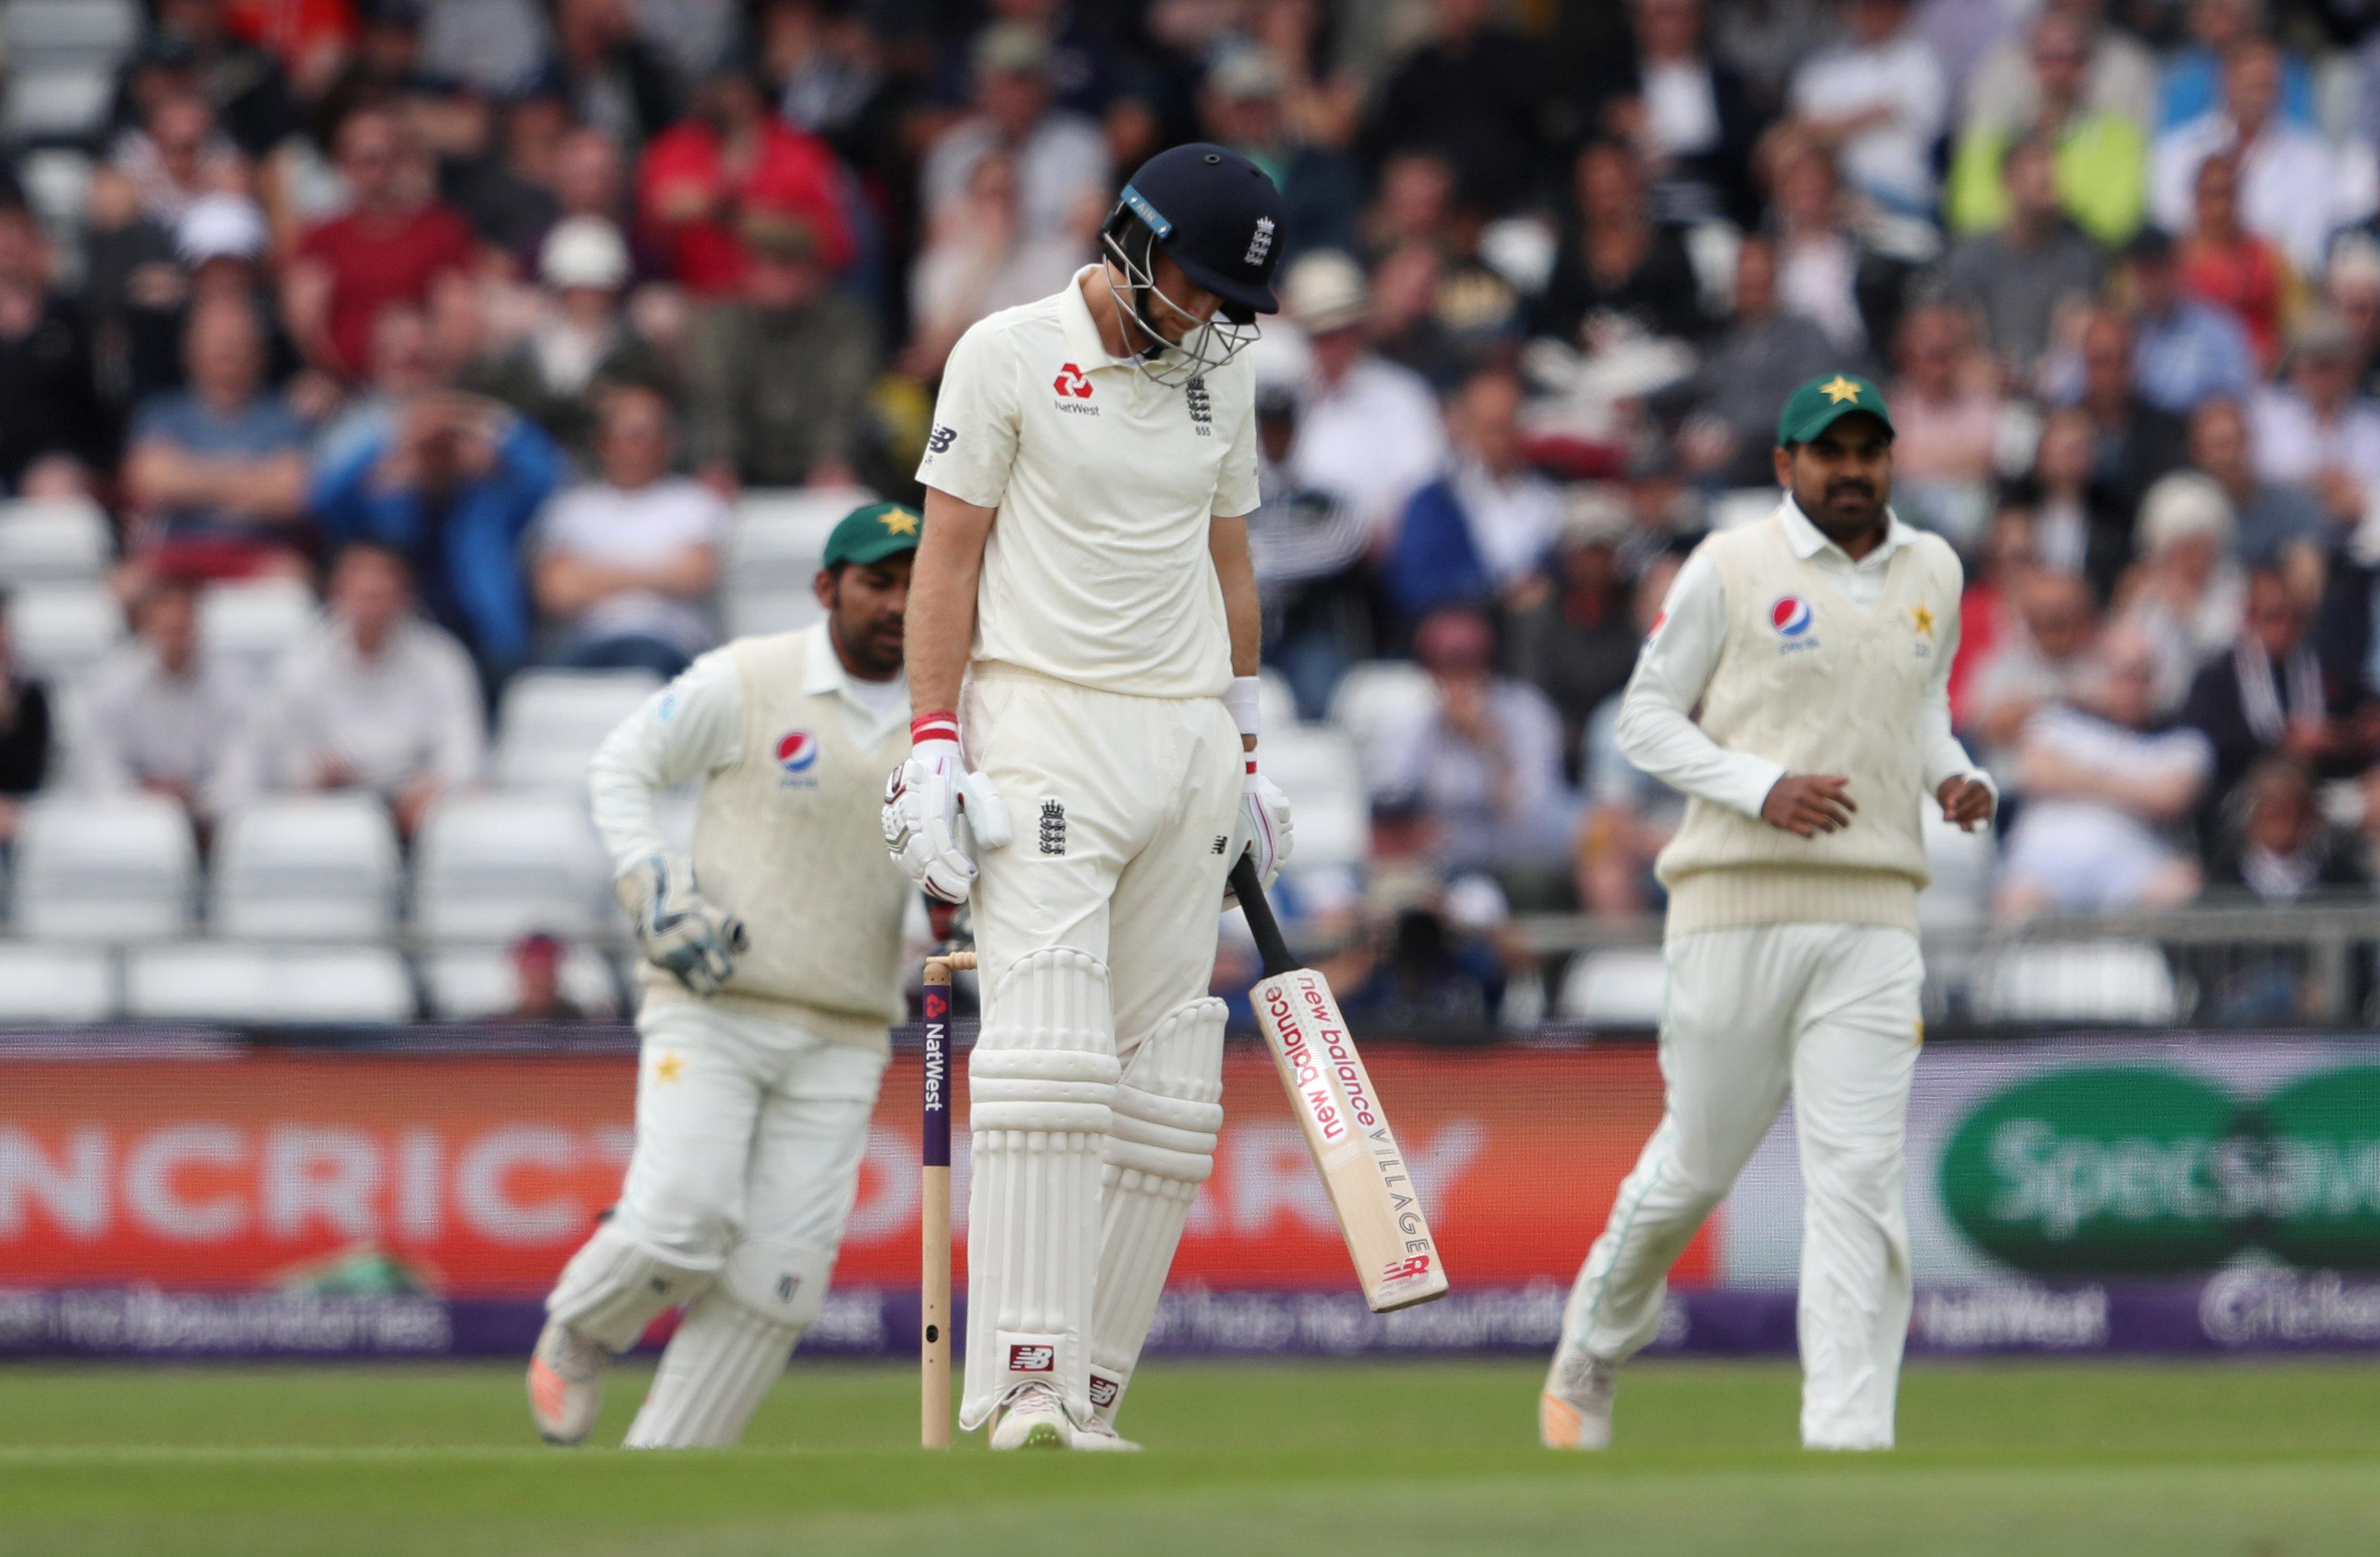 Joe Root was disappointed to be dismissed for 45 on day two